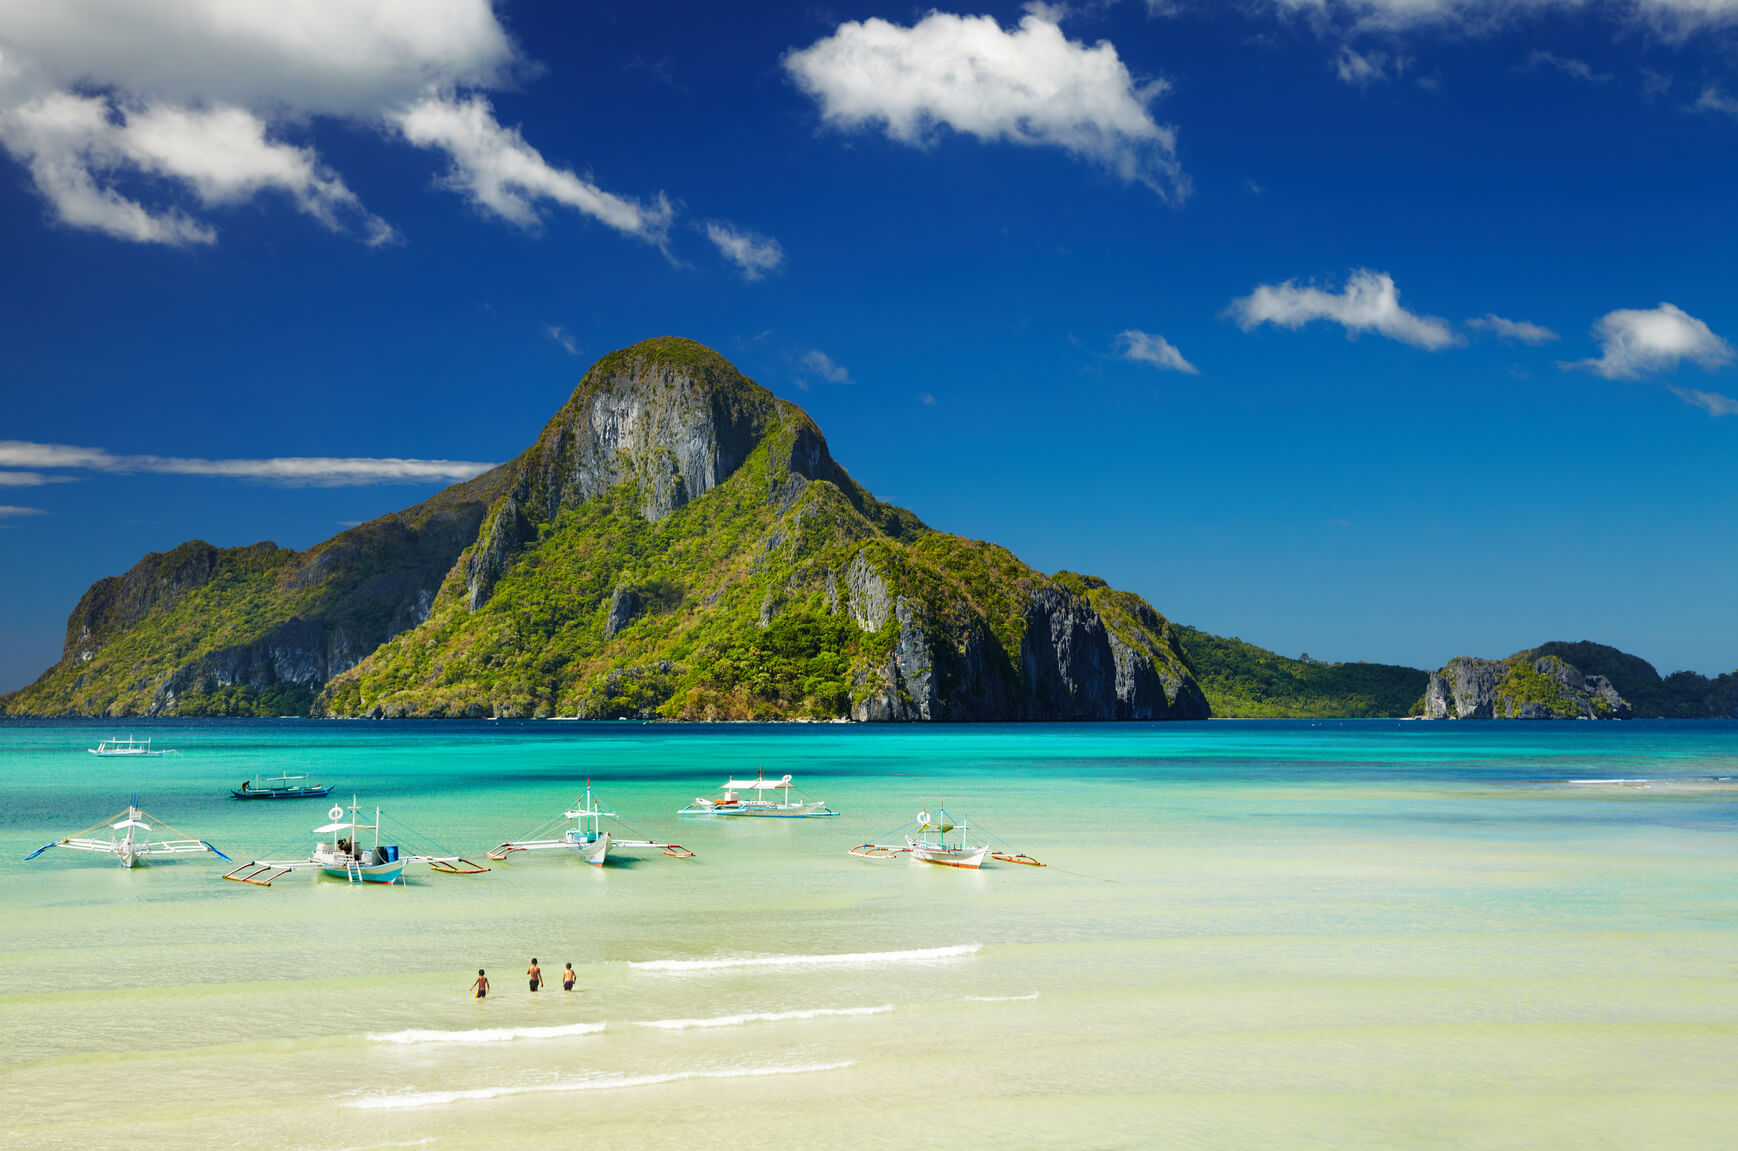 HOT!! Dubai, UAE to Manila, Philippines for only $86 USD roundtrip